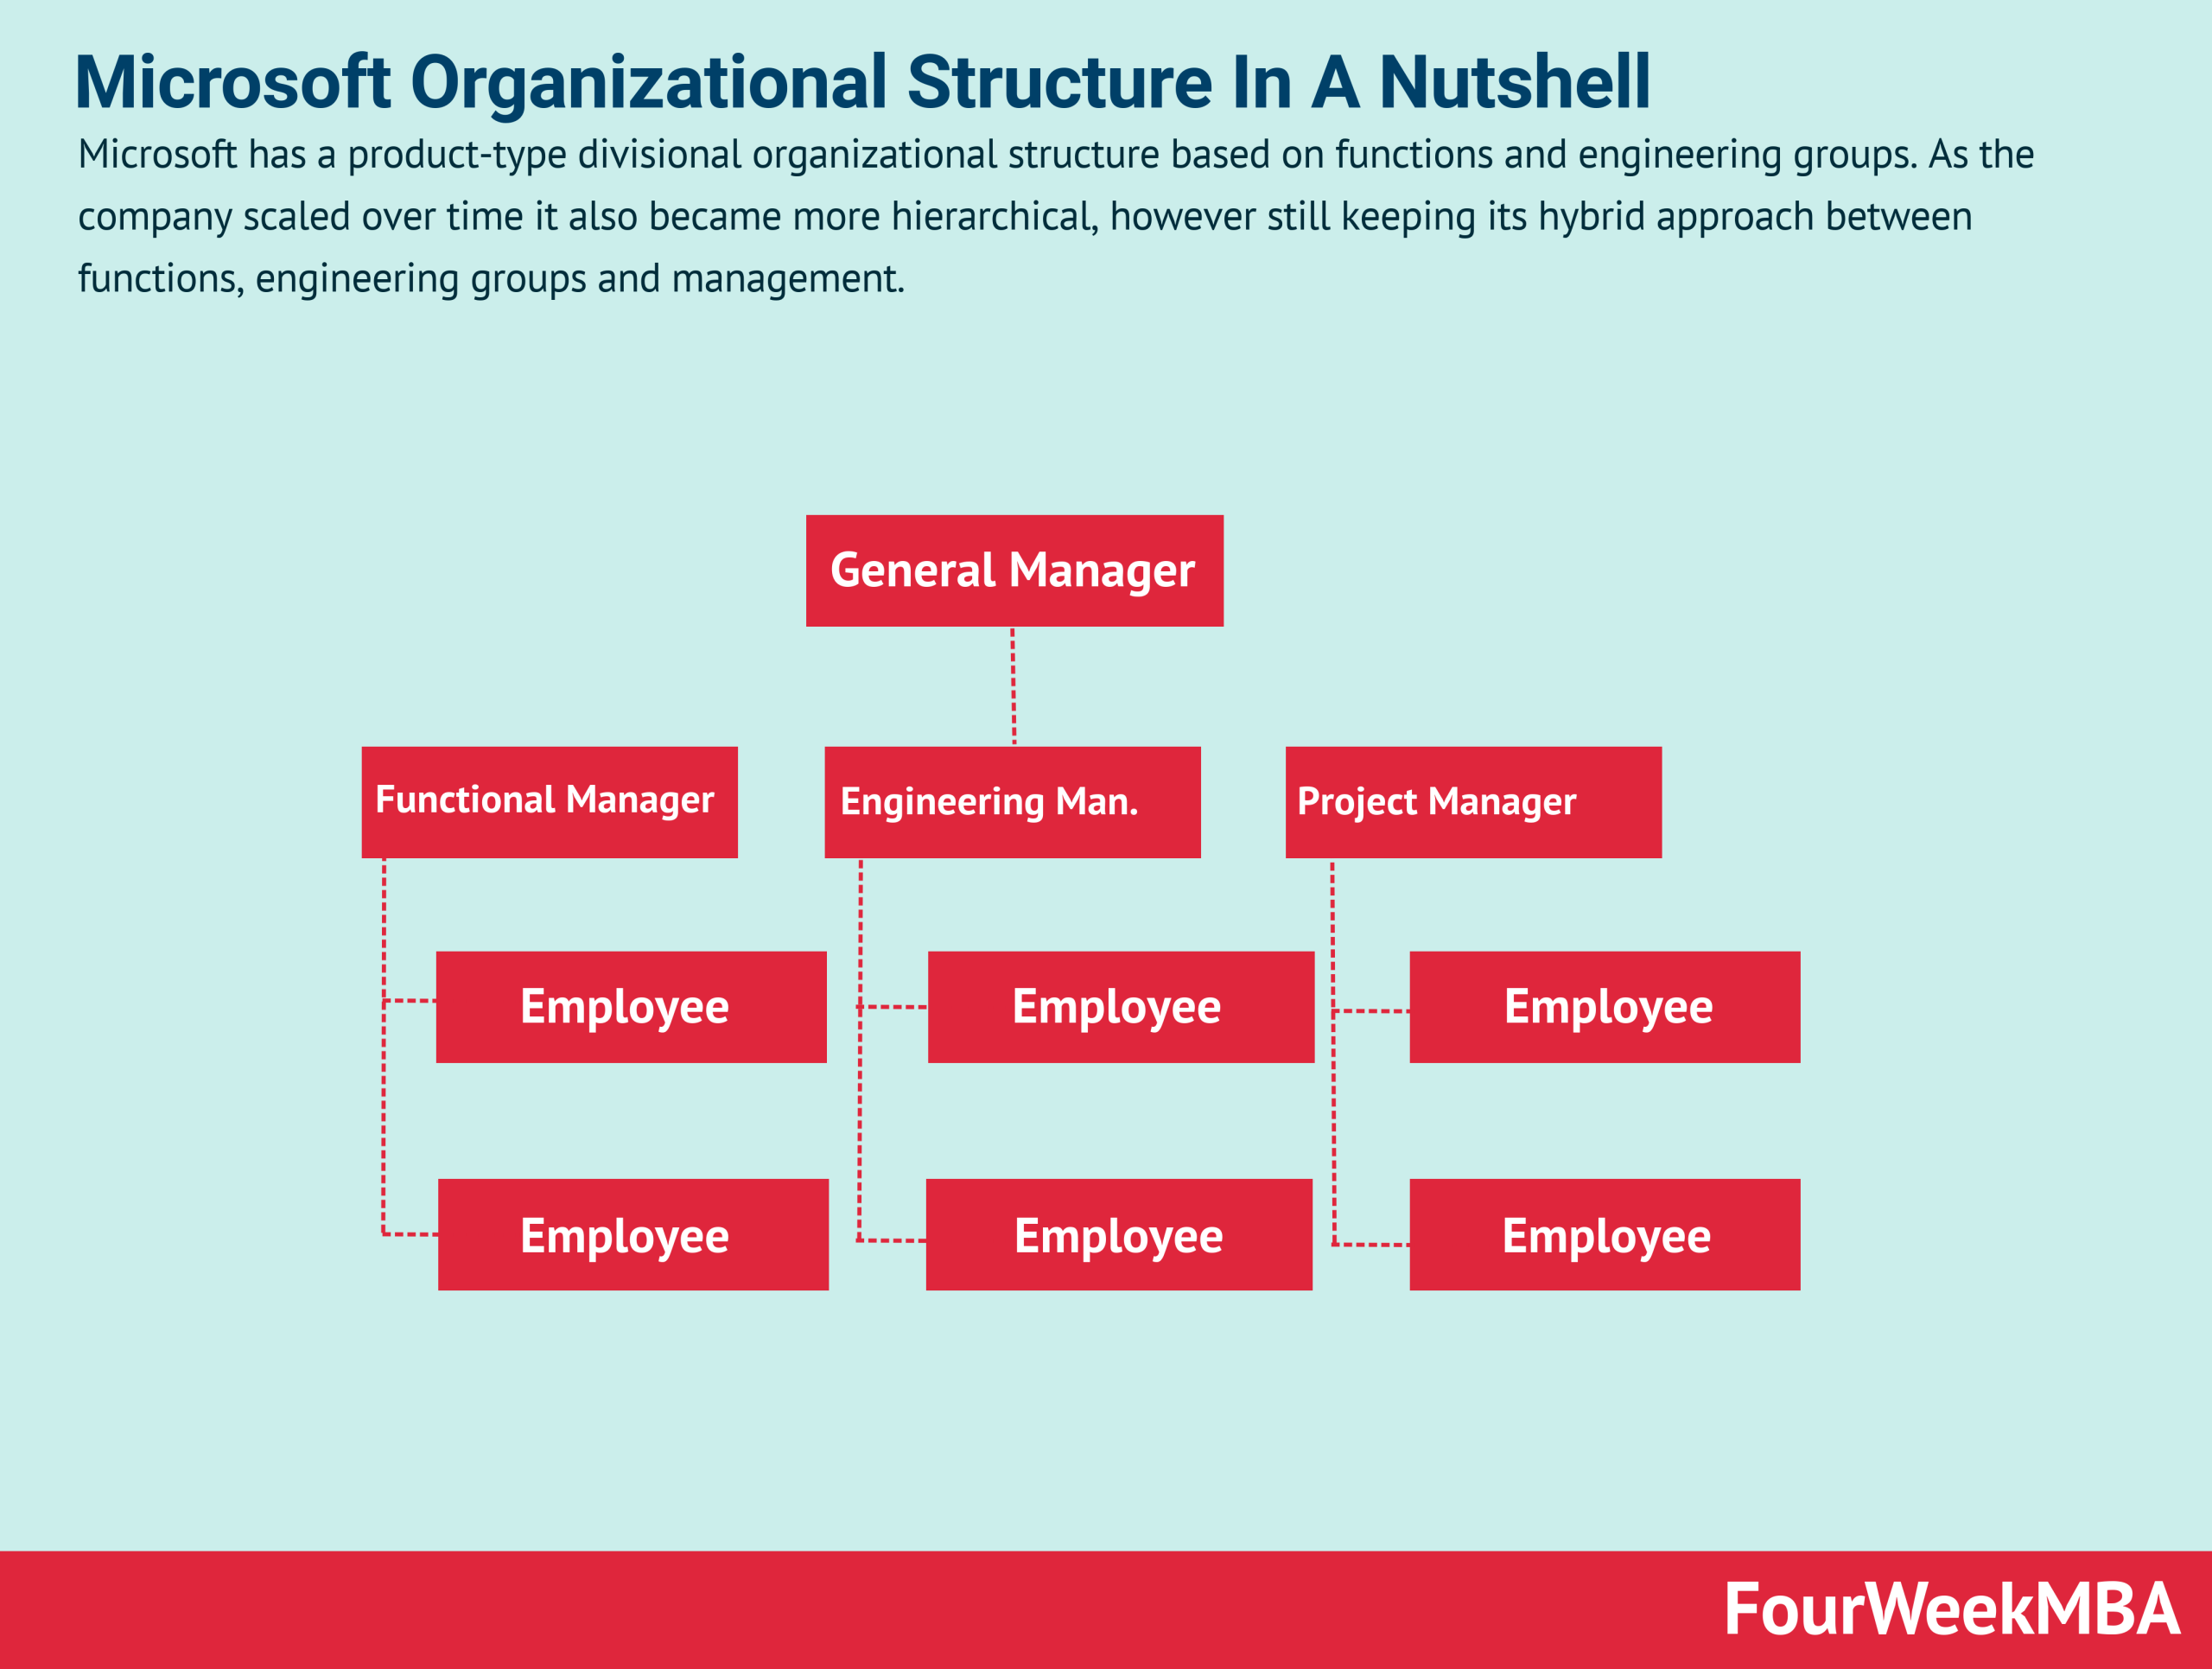 Microsoft Organizational Structure In A Nutshell